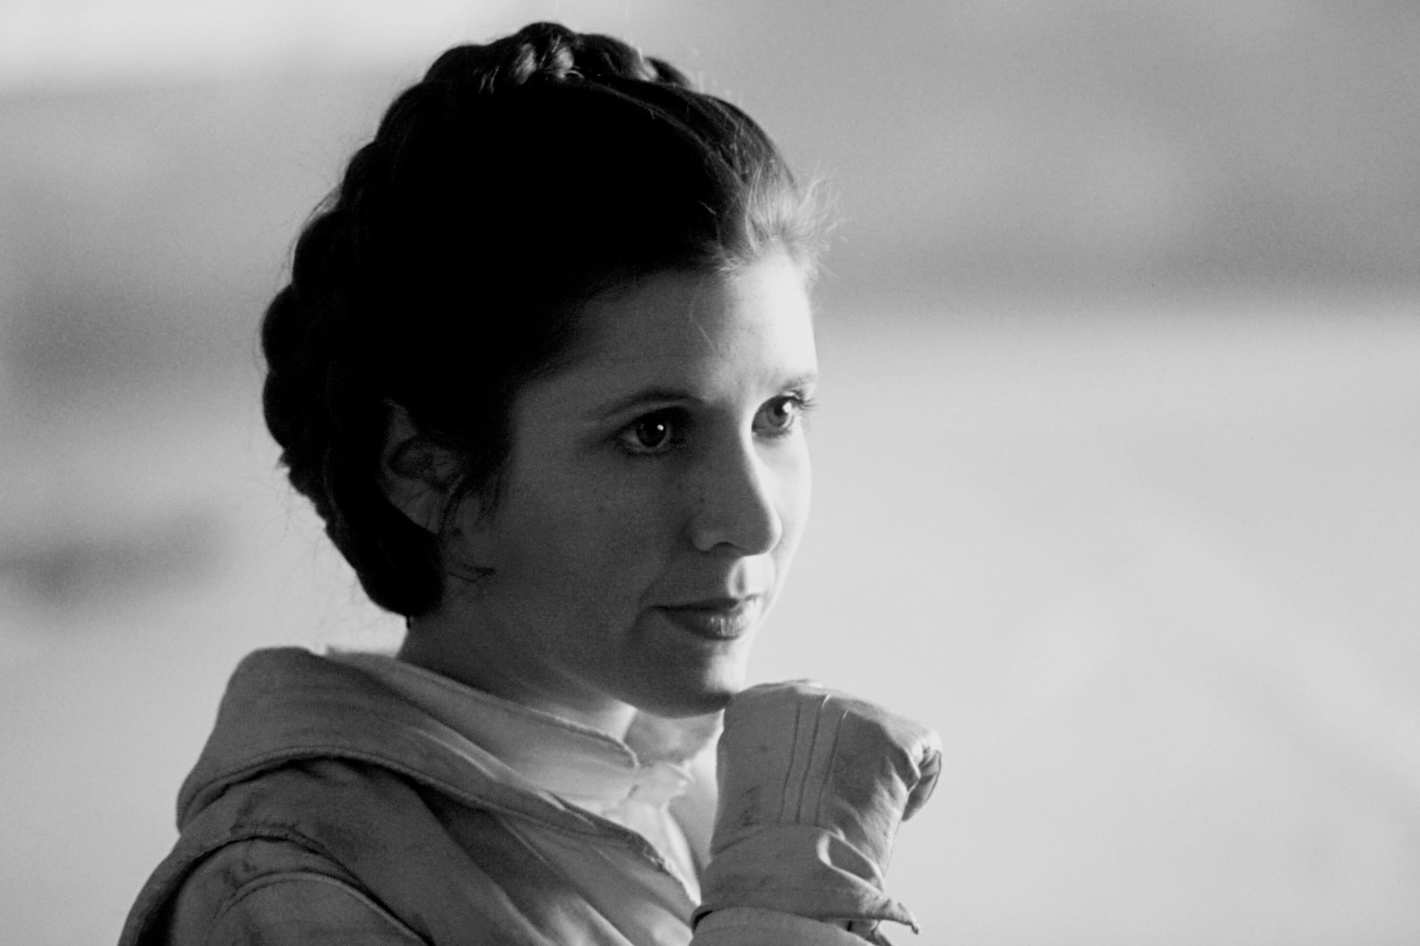 Actress Carrie Fisher, starred for Princess Leia in Star Wars, dies